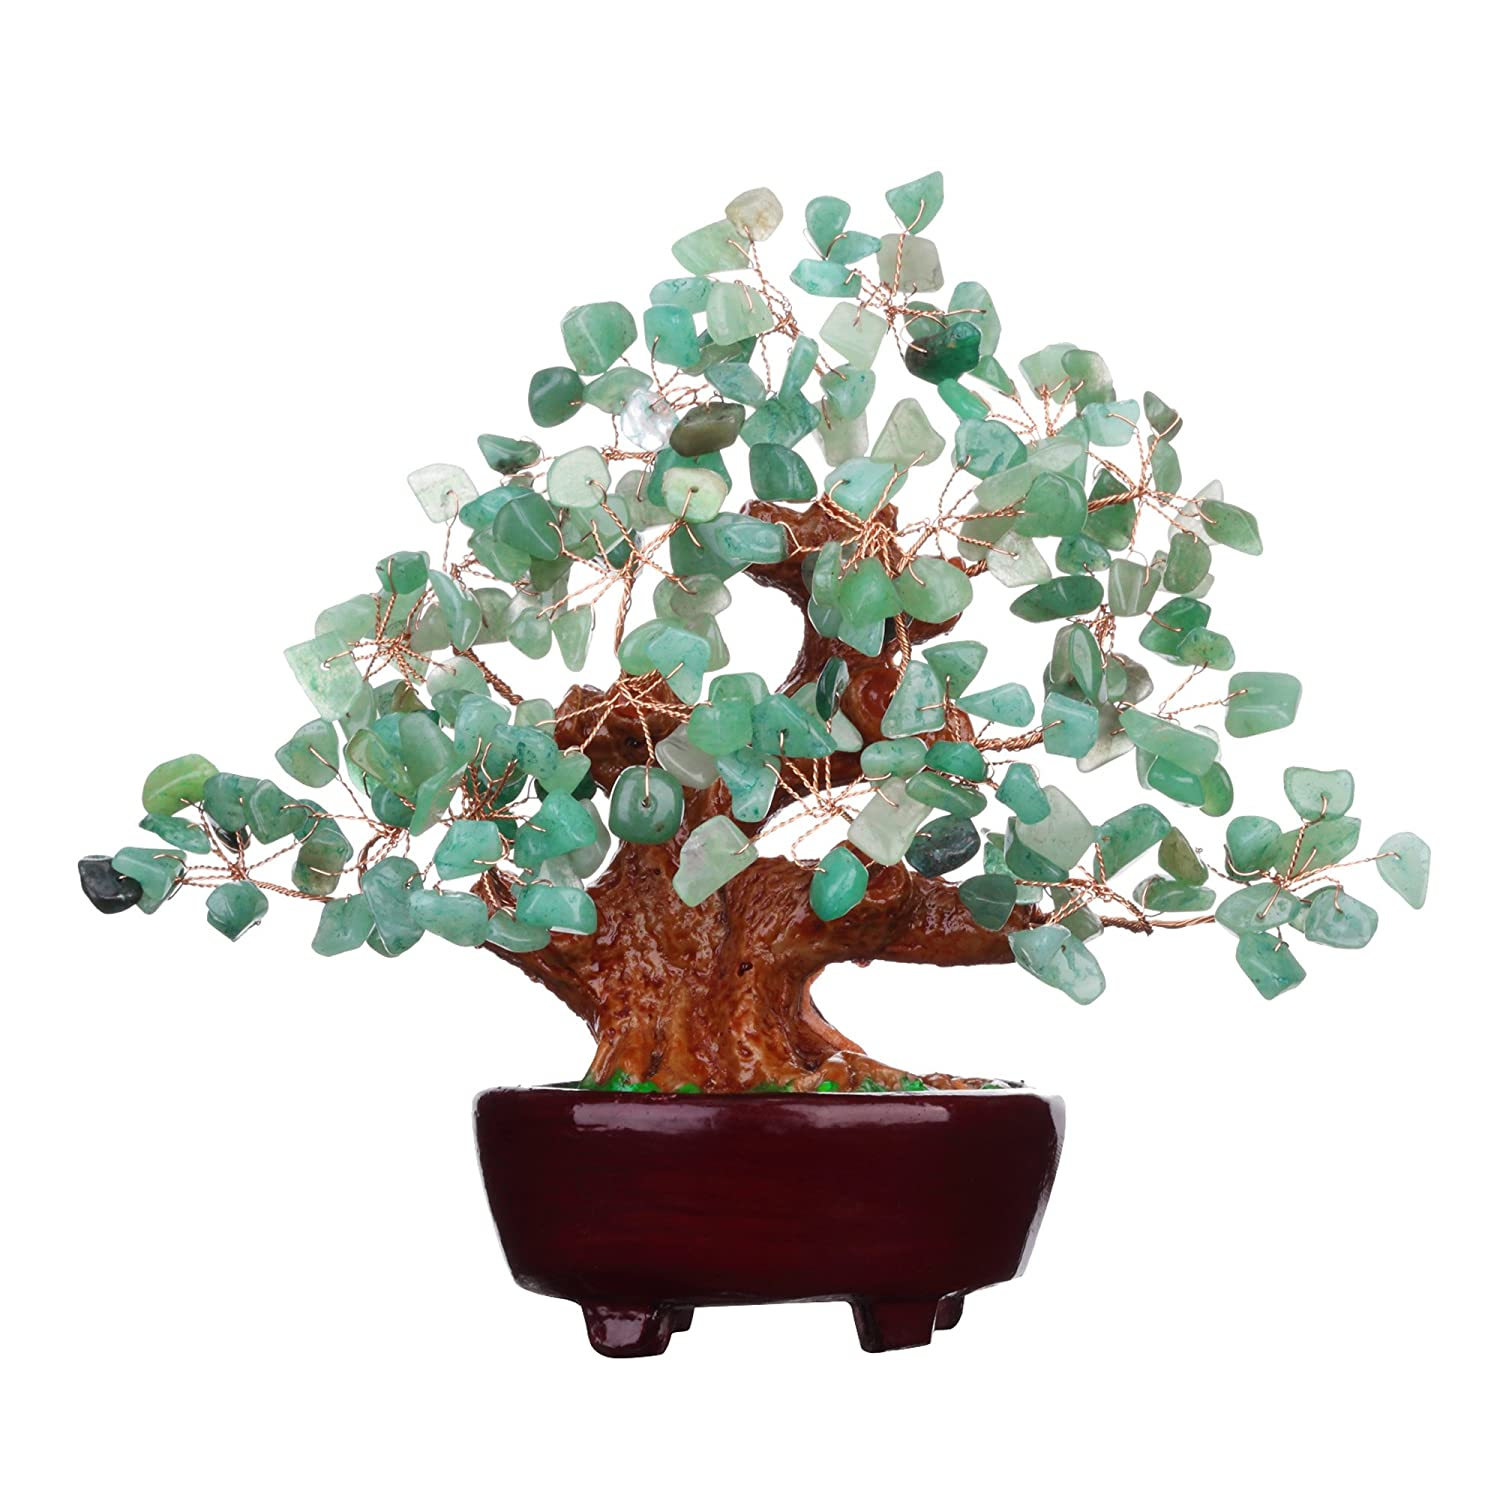 7 Inch Feng Shui Aventurine Quartz Gem Stone Money Tree Natural Green Crystal Money Tree Office Living Room Good Luck Decoration Parma77 Mart AX-AY-ABHI-64386